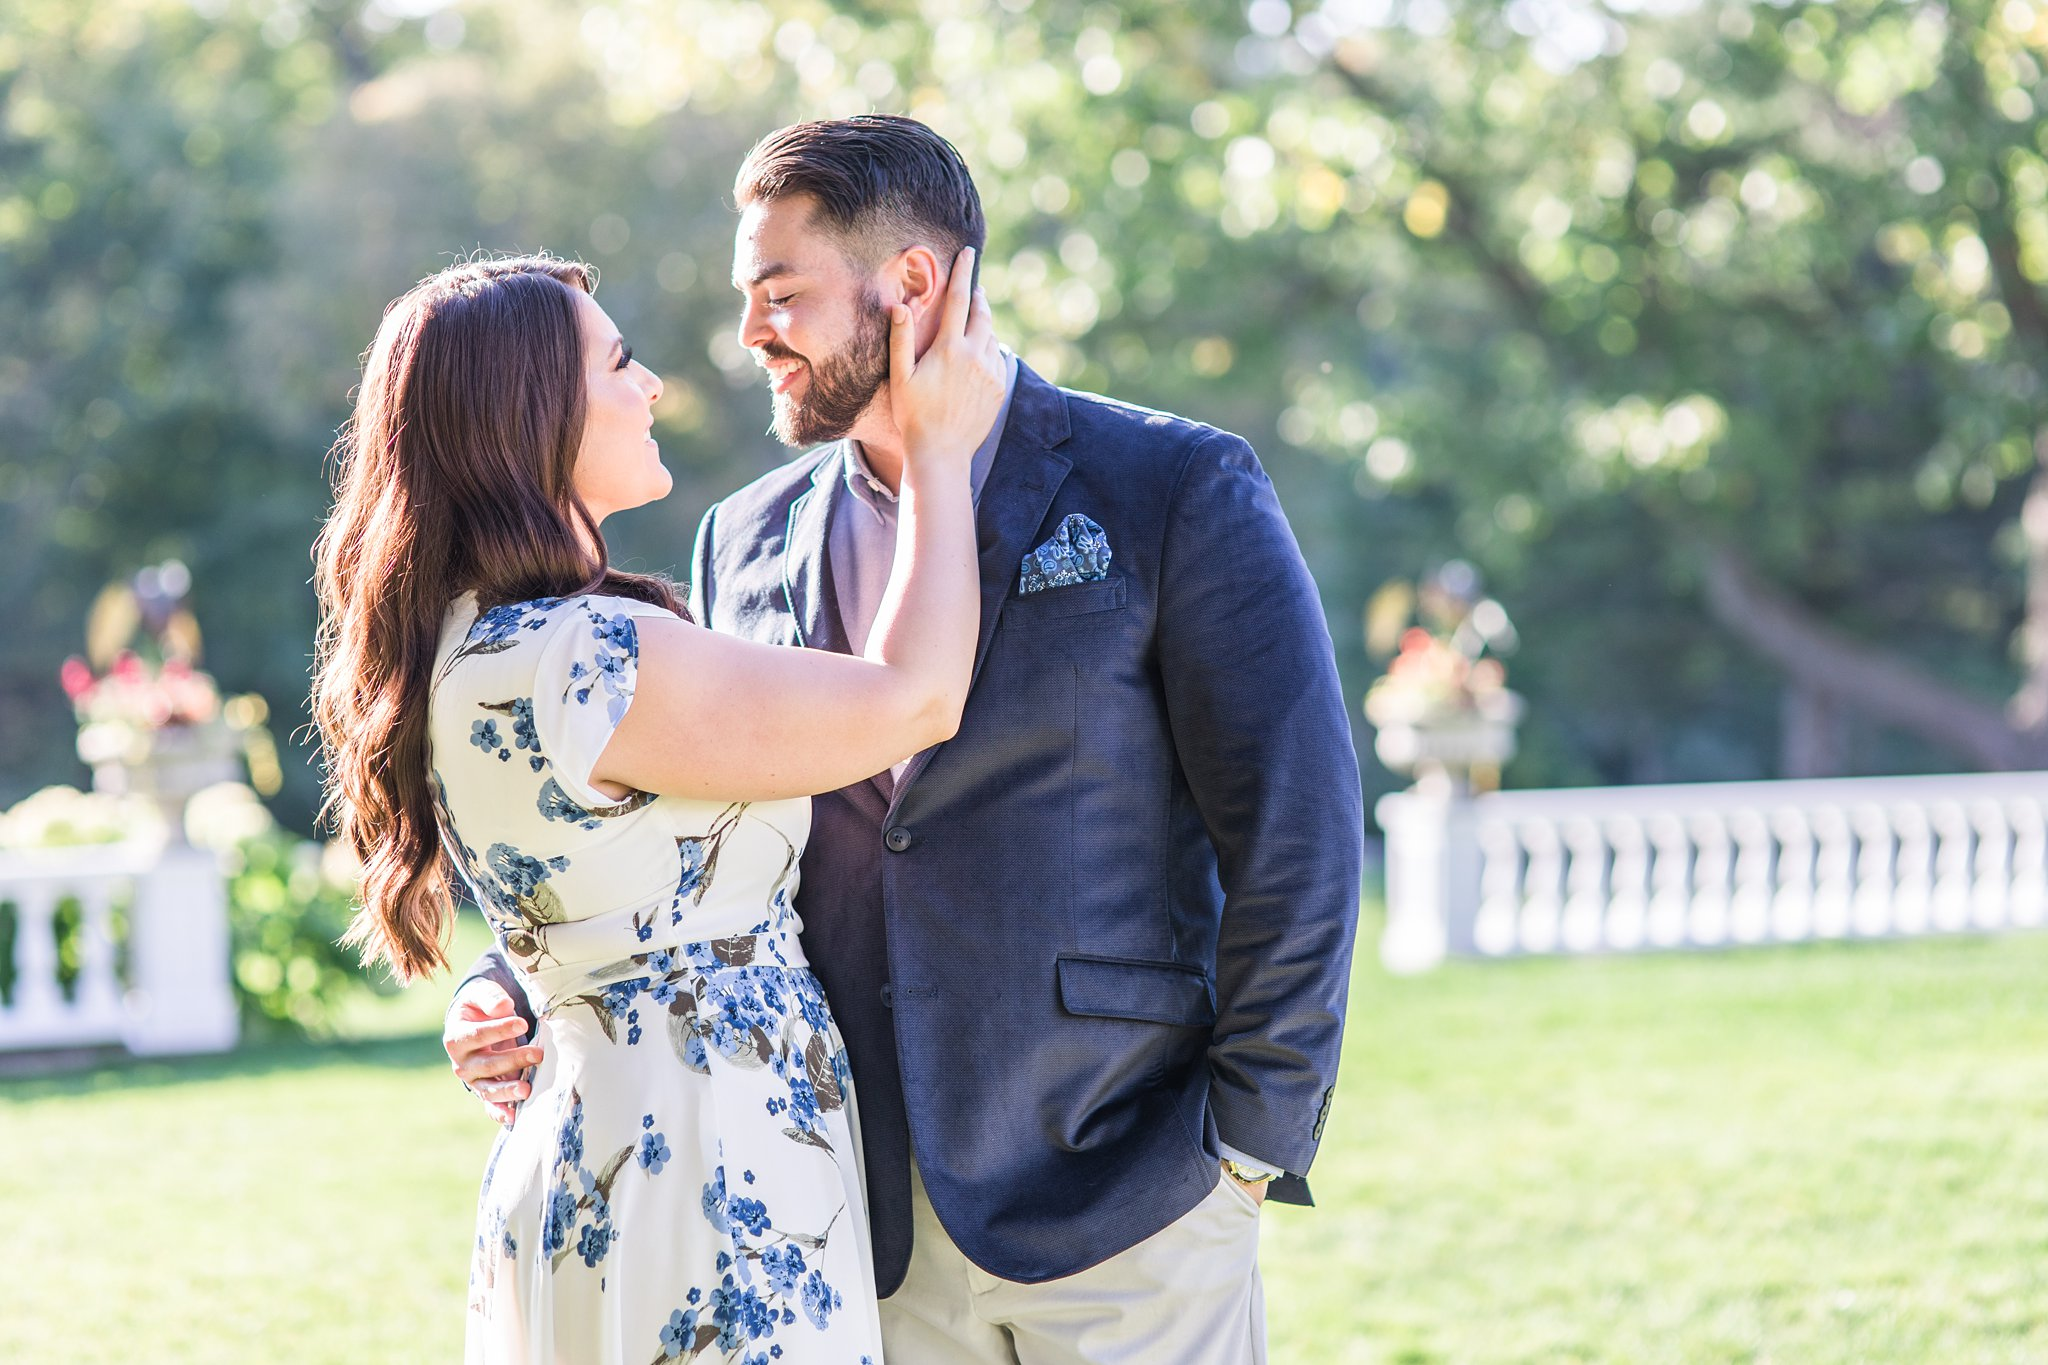 Couple photos, Mackenzie King Estate Engagement Photos by Amy Pinder Photography